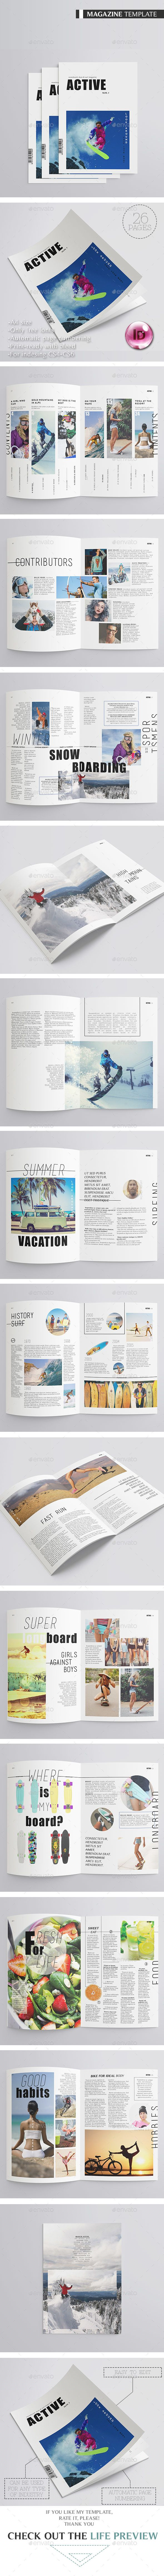 Active Sport Magazine 26 Pages - Magazines Print Templates Downlaod here : https://graphicriver.net/item/active-sport-magazine-26-pages/16364780?s_rank=210&ref=Al-fatih